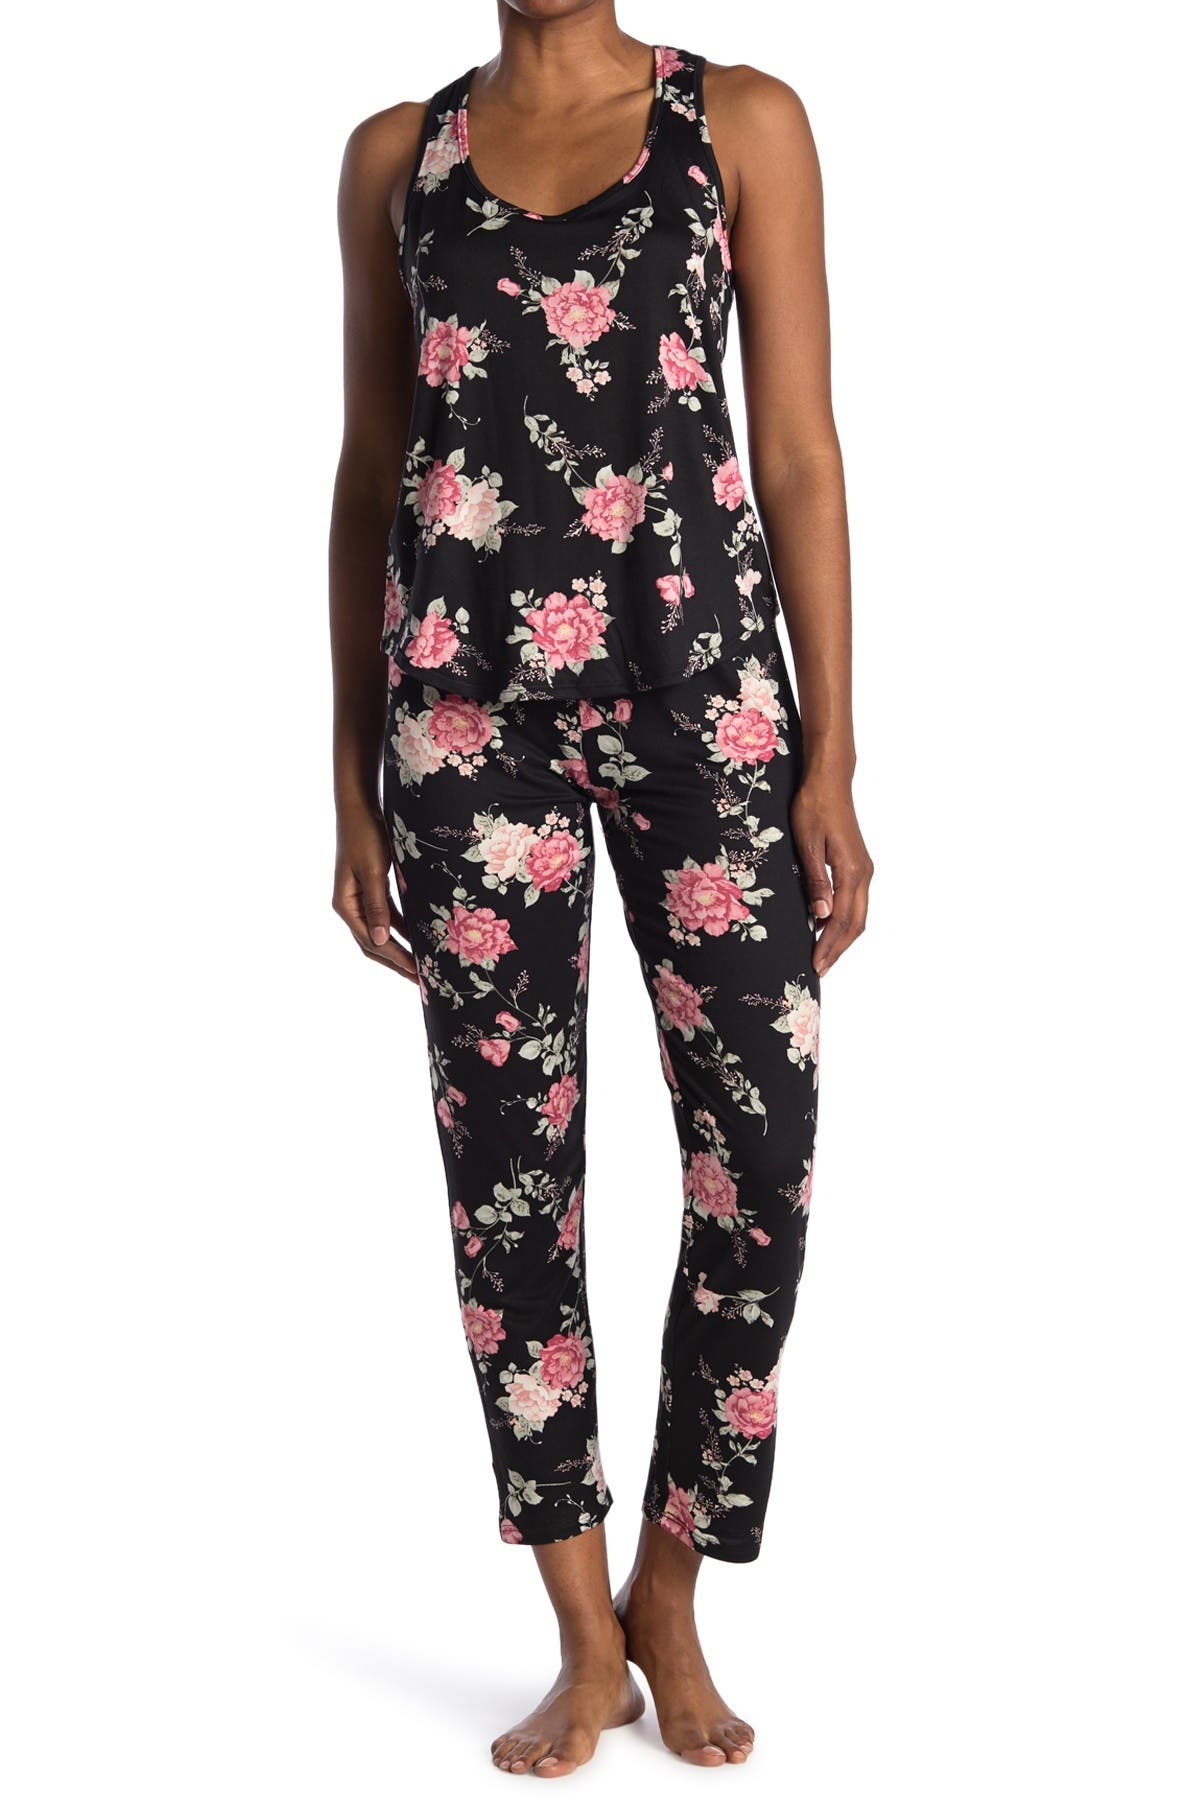 Image of Flora by Flora Nikrooz Livia Floral Print Tank Top & Pants 2-Piece Pajama Set